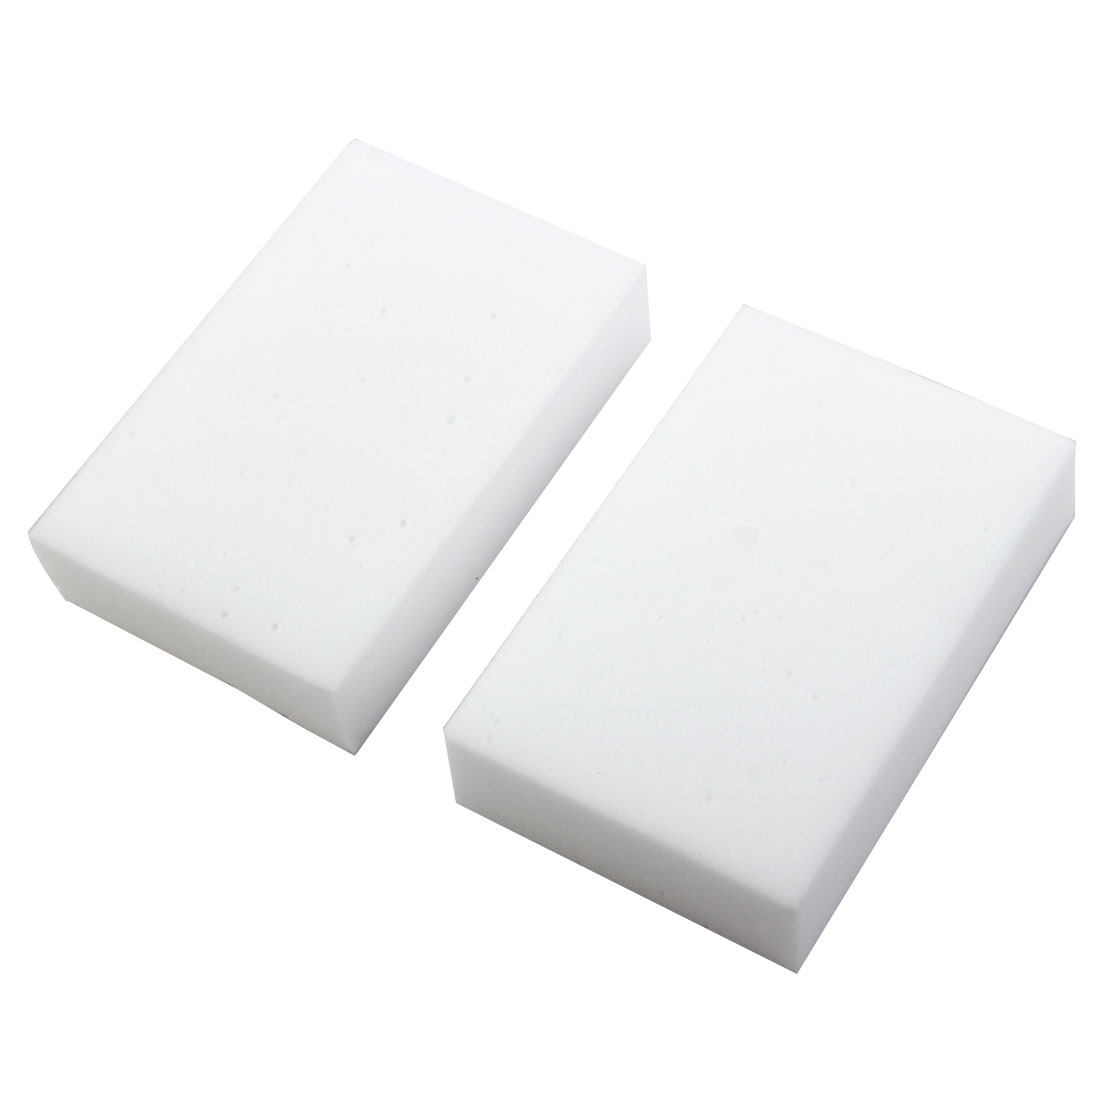 Home Furniture Office Boat Auto Car Sponge Block Cleaning Tool Cleaner Brush Pad White 2 Pcs